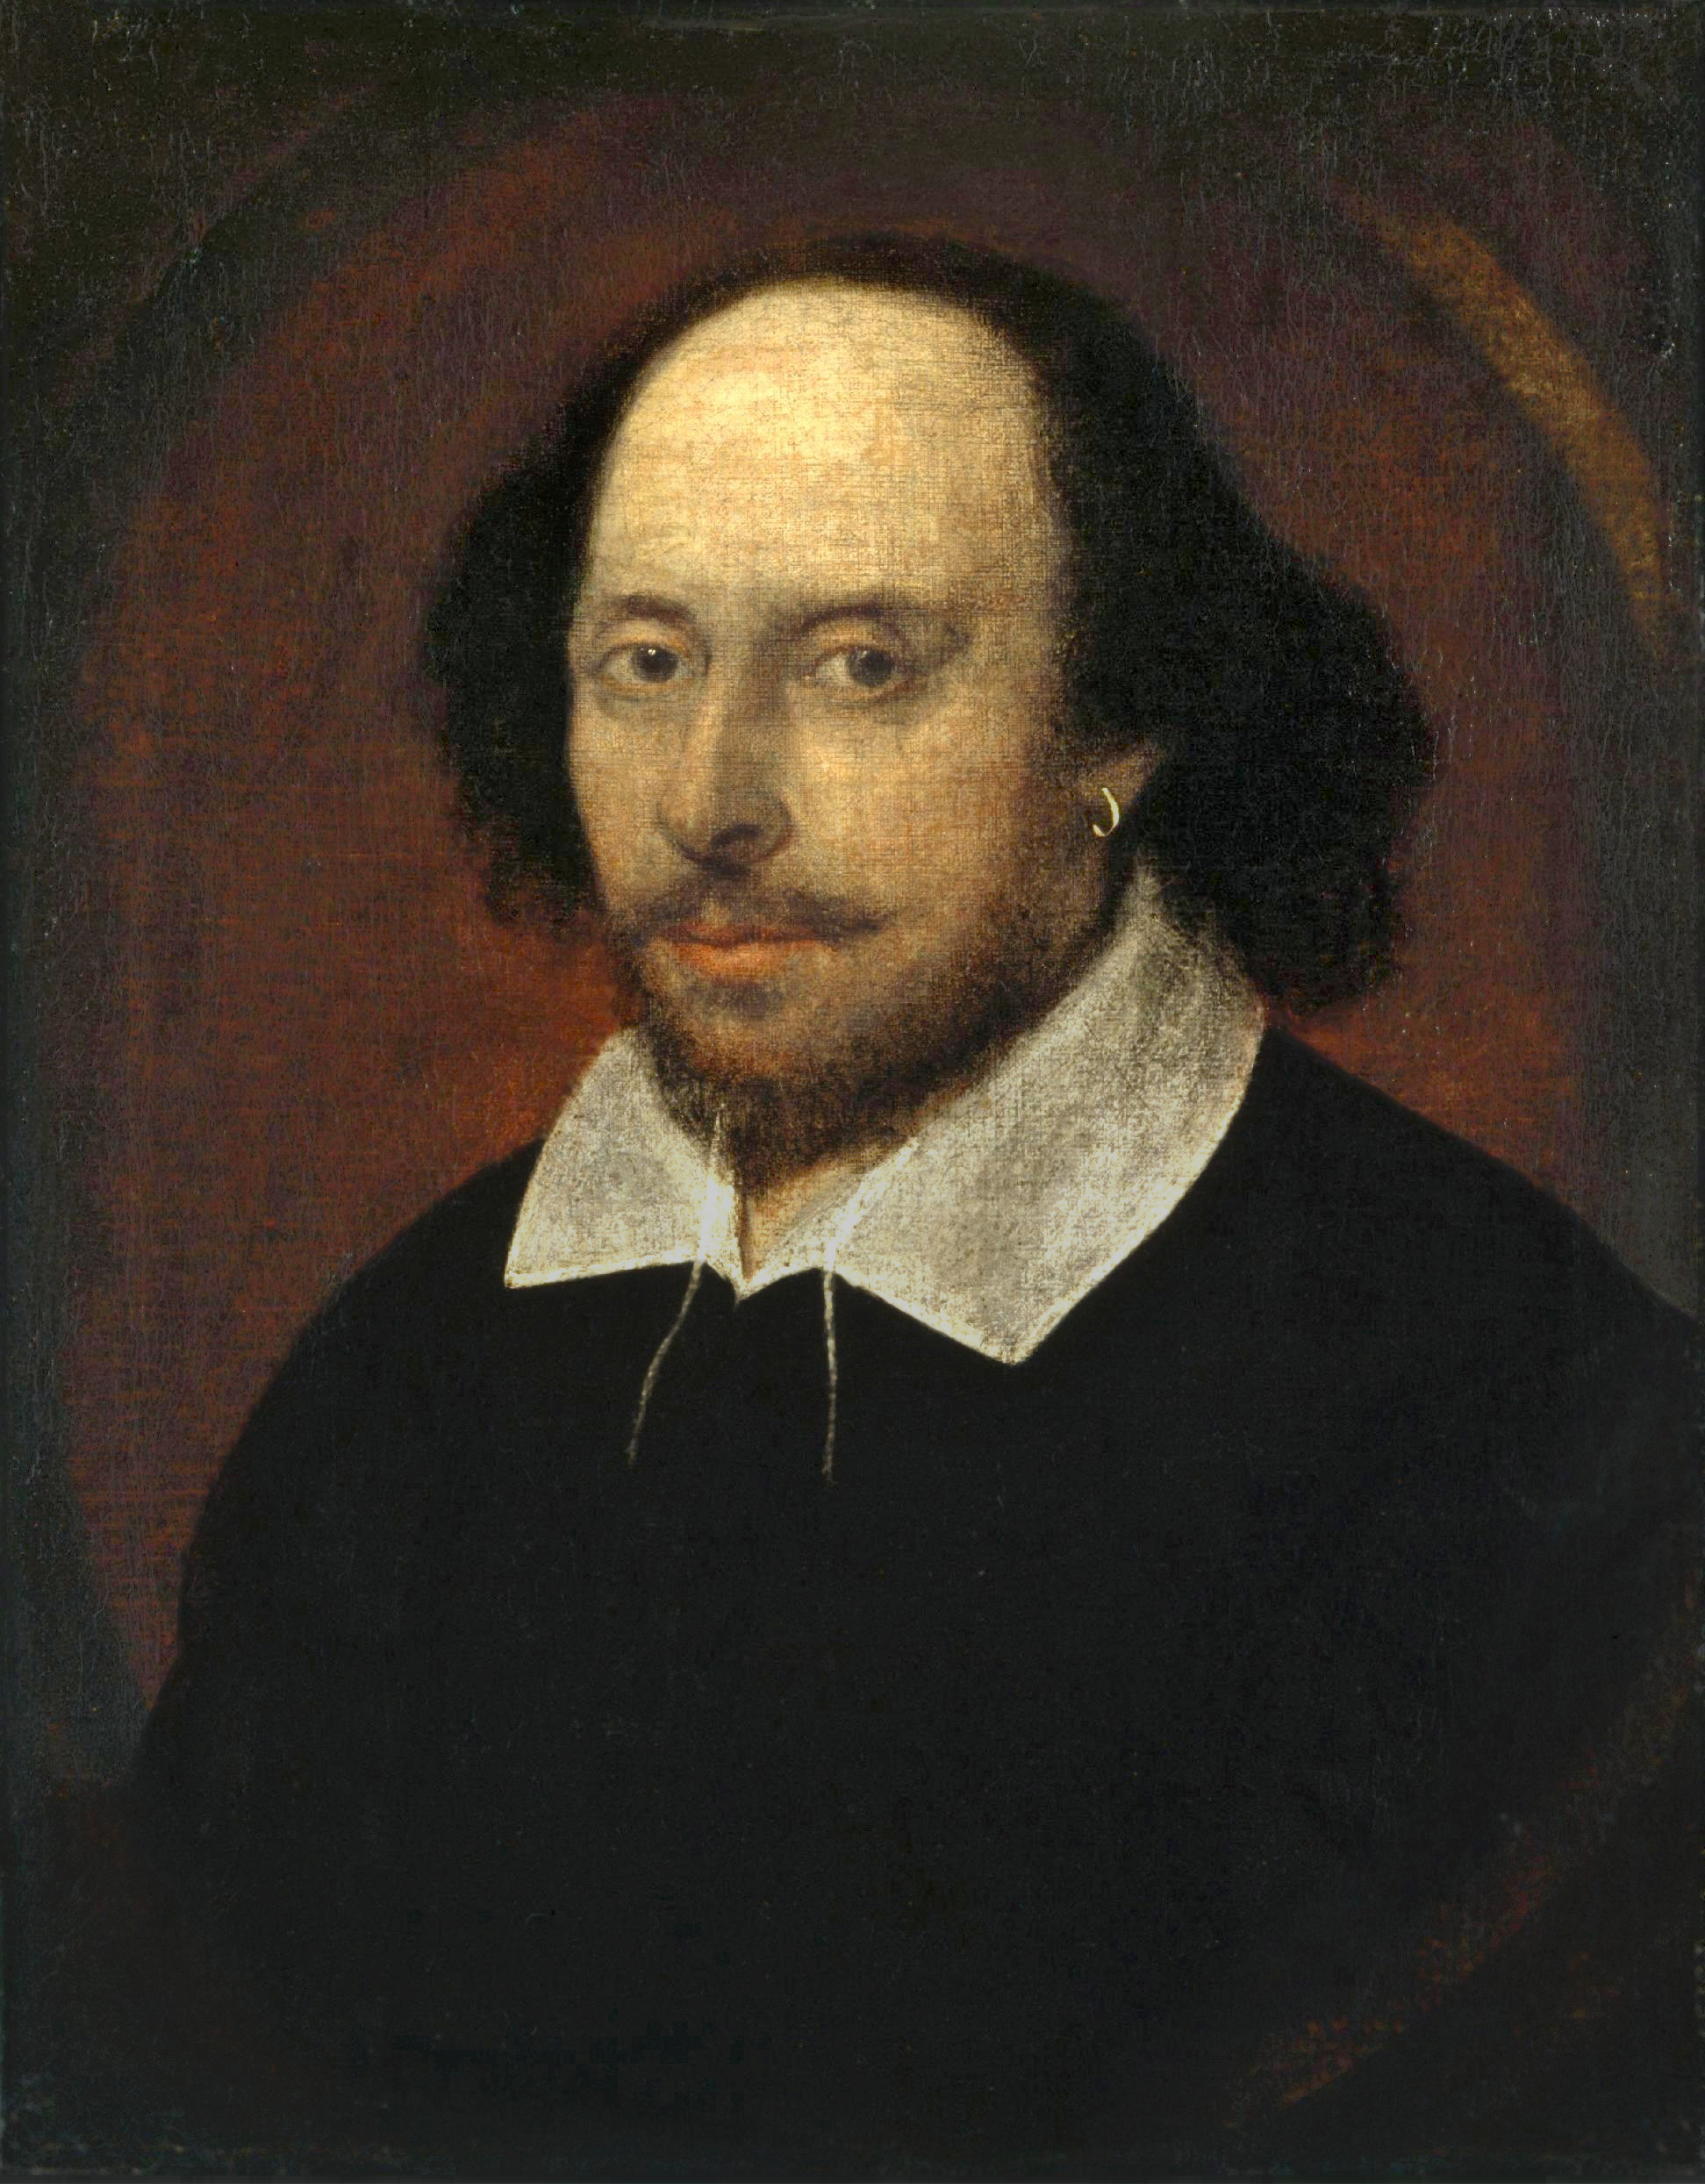 A history of william shakespeare born in 1564